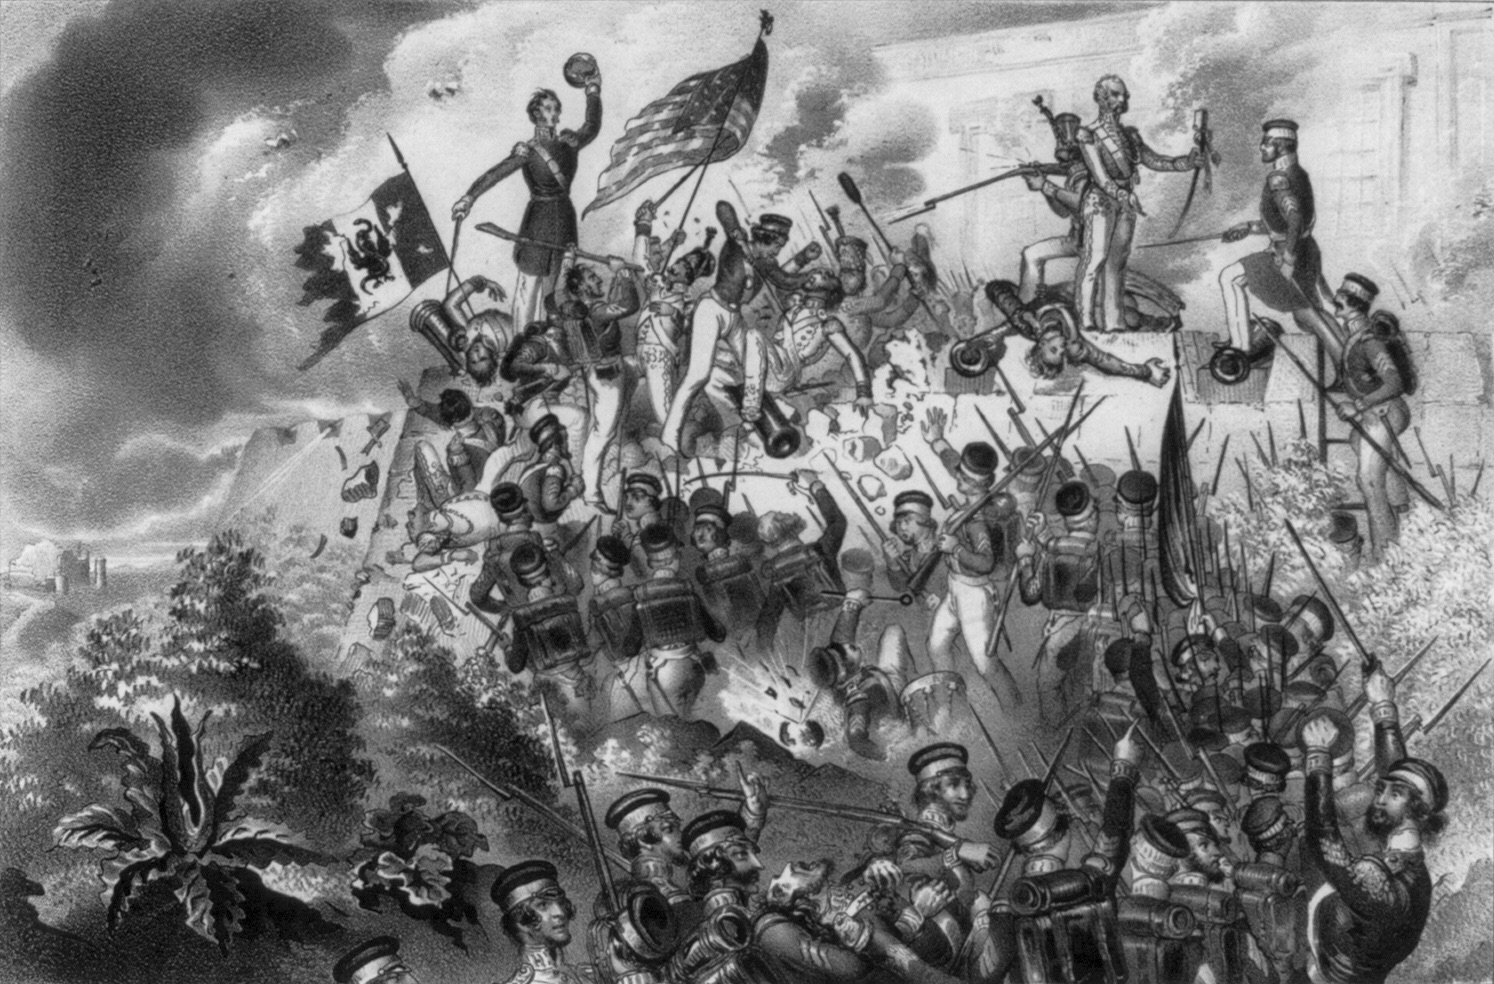 a history of blacks in americas wars Explore black history milestones and events that shaped african-american history, including the civil war, abolition of slavery and civil rights movementslavery comes to north america , 1619 to.